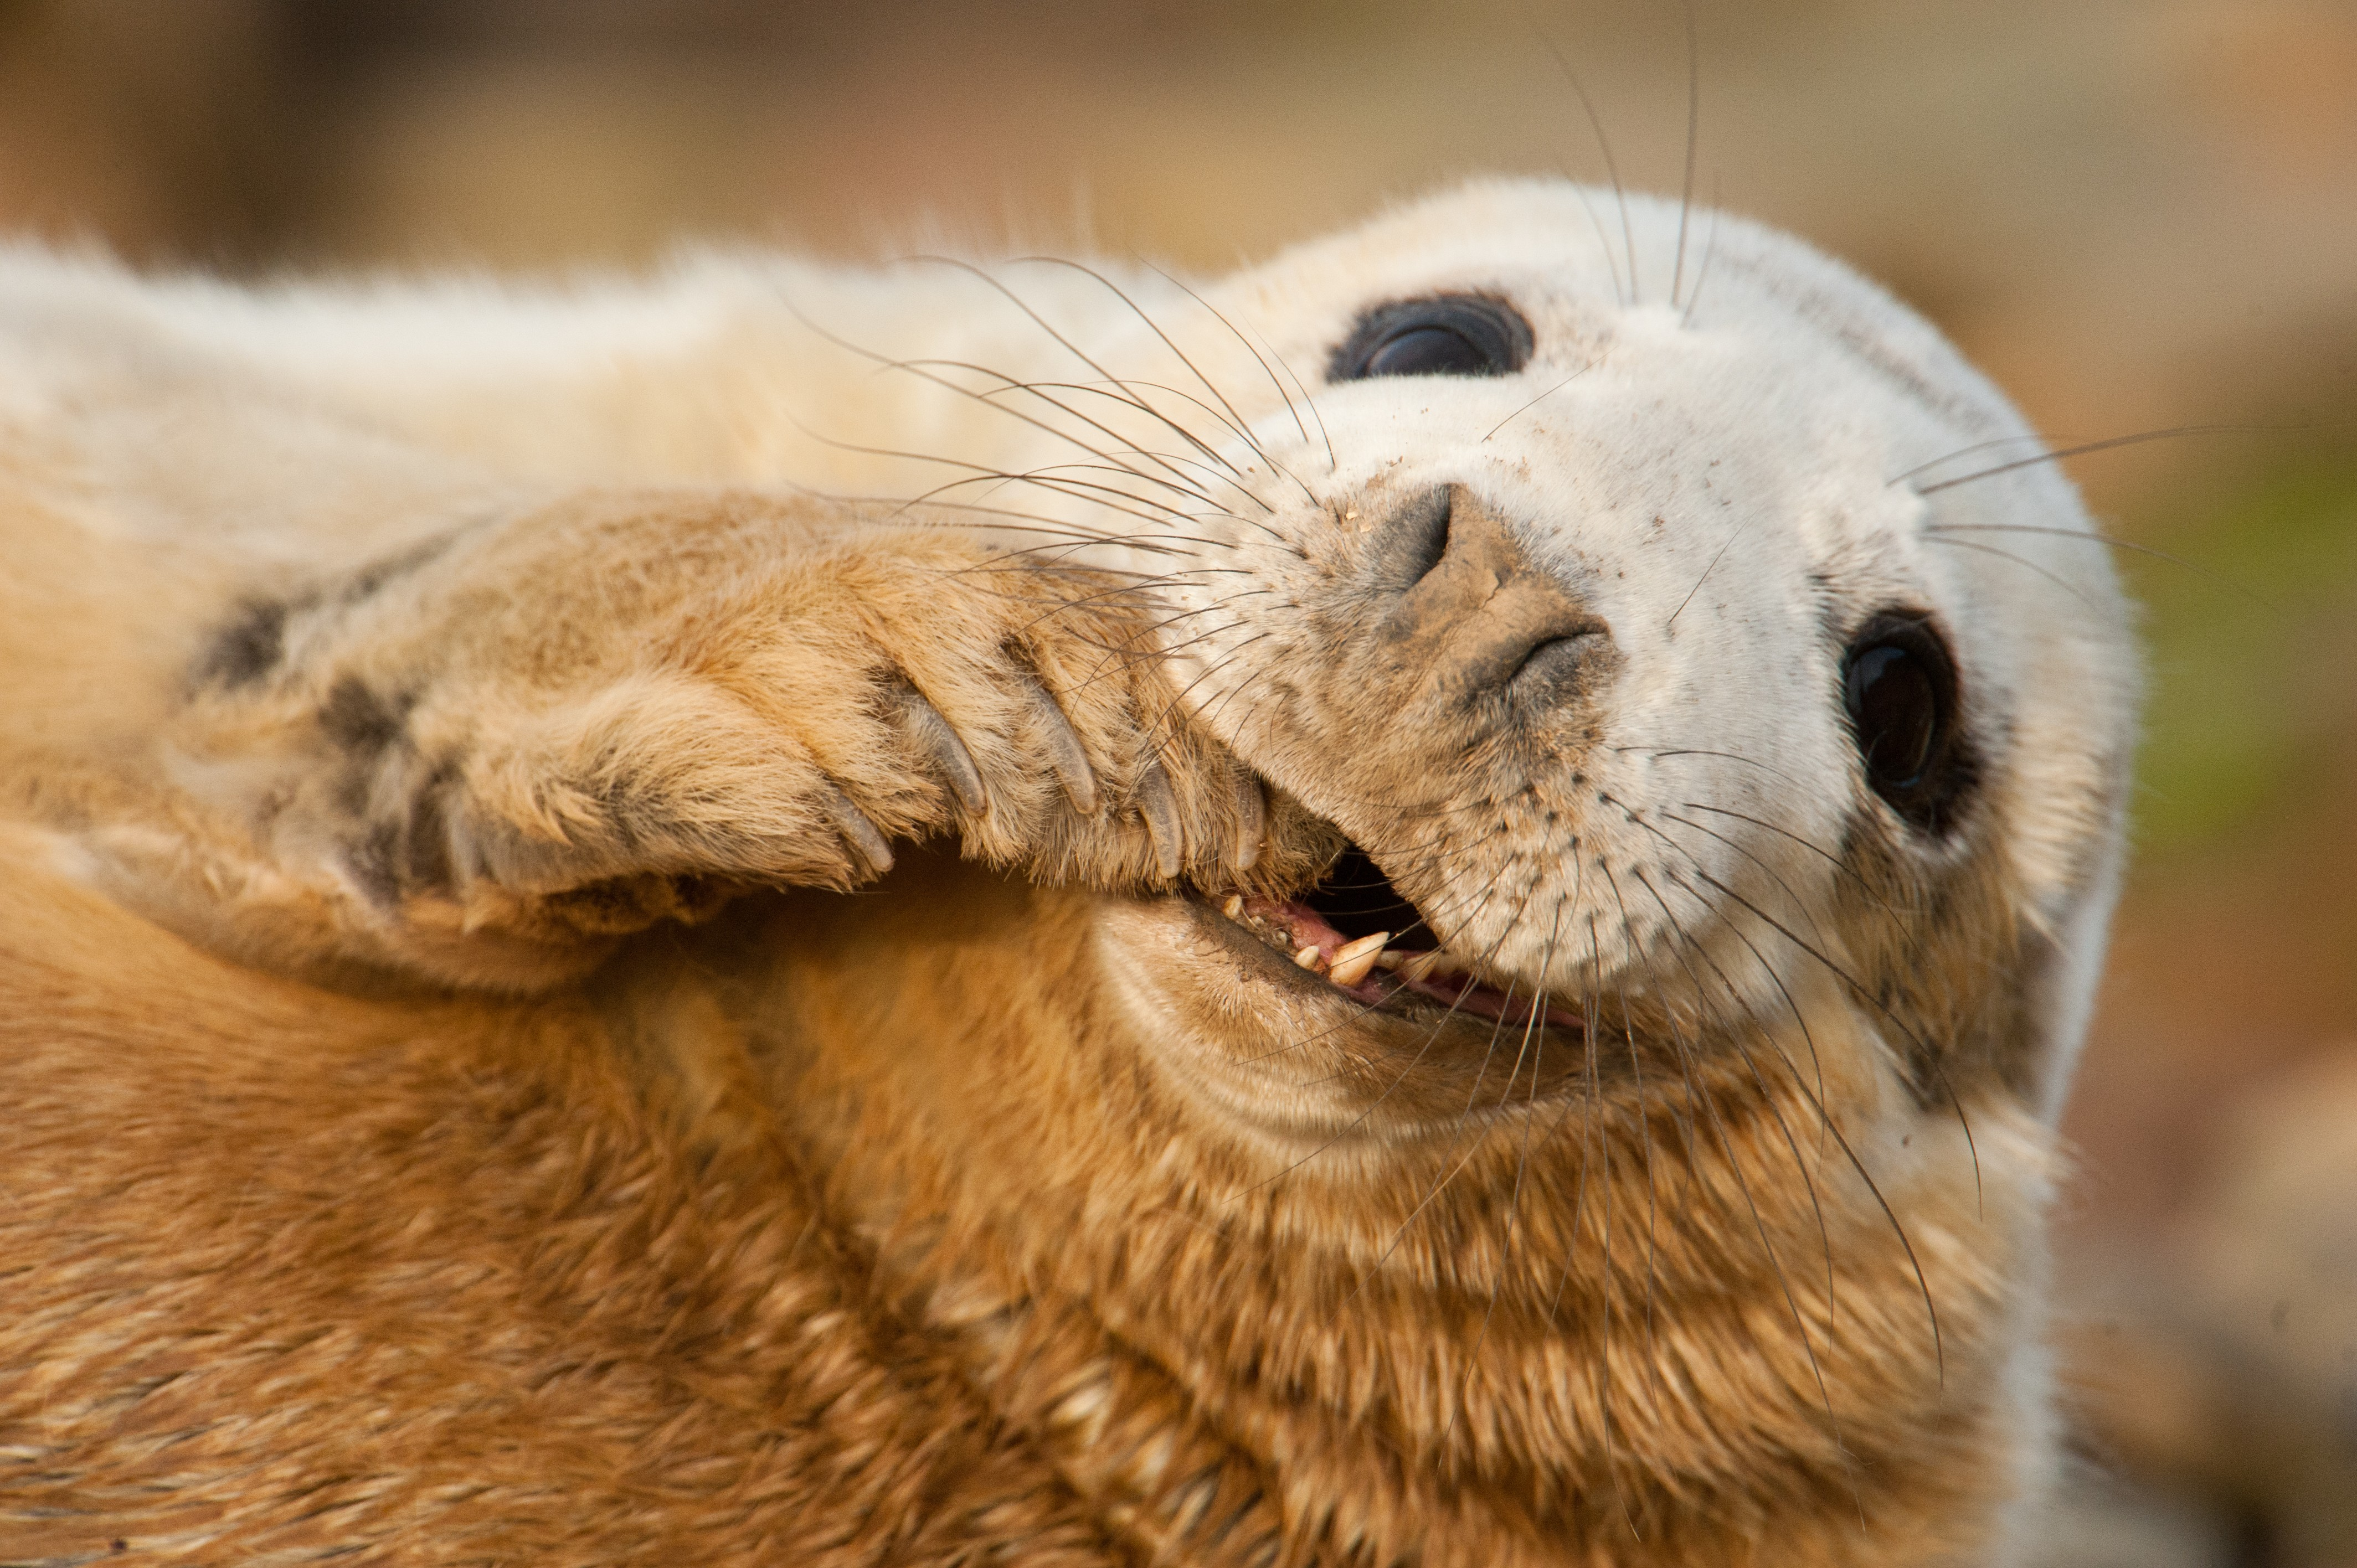 Cute Wallpapers Quotes For Girls Wallpaper Grey Seal Scotland Sable Island Funny Teeth